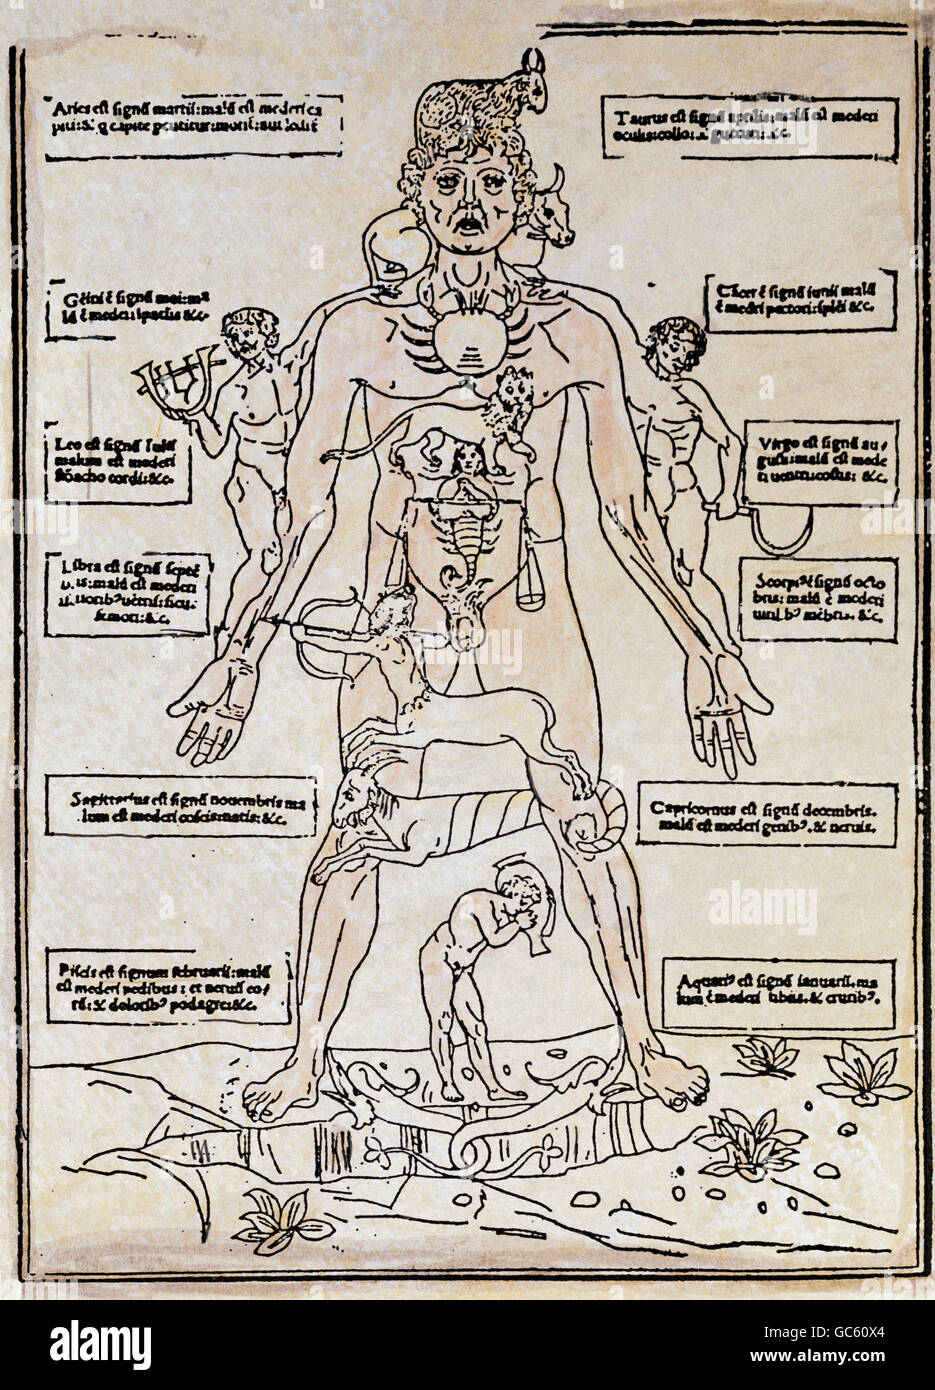 astrology, zodiac man, woodcut from 'Fasciculus medicinae' by Johannes de Ketham, Venice, Italy, 1491, Additional - Stock Image